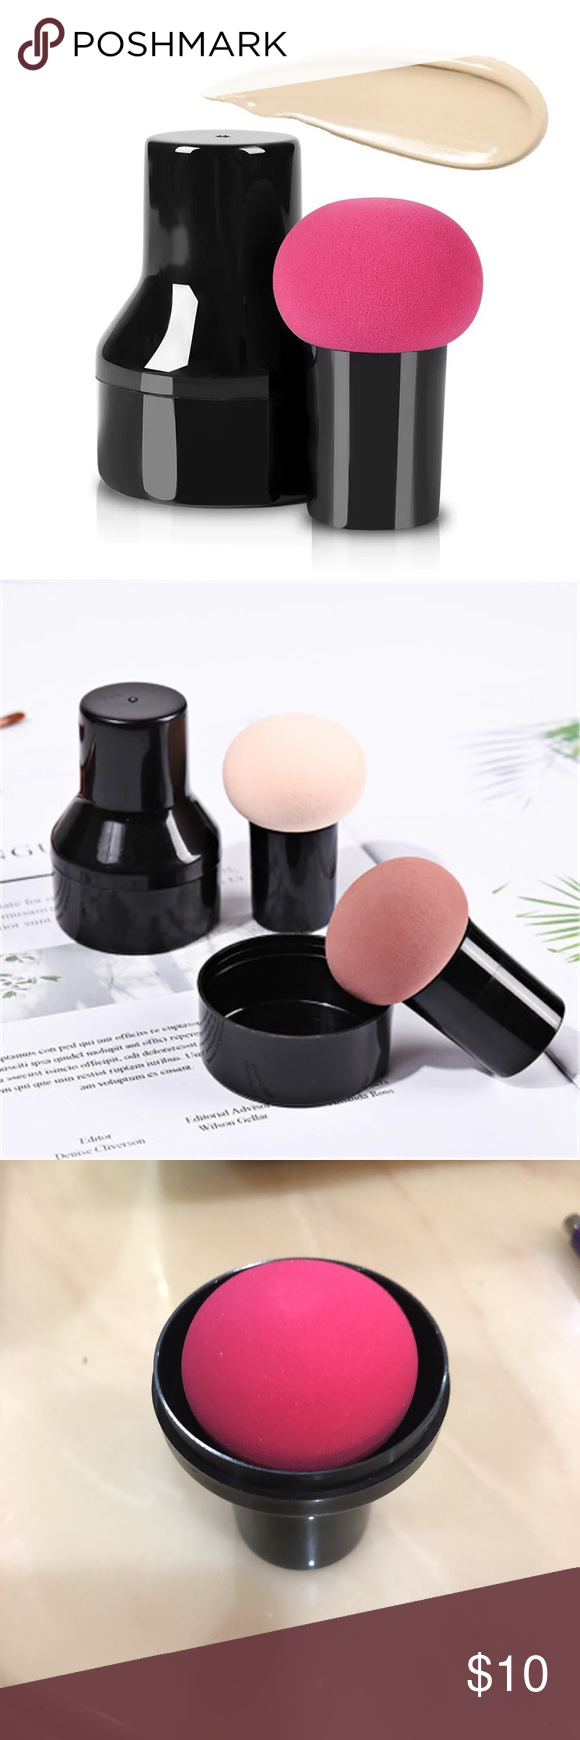 Makeup foundation buff Makeup foundation, Makeup sponge